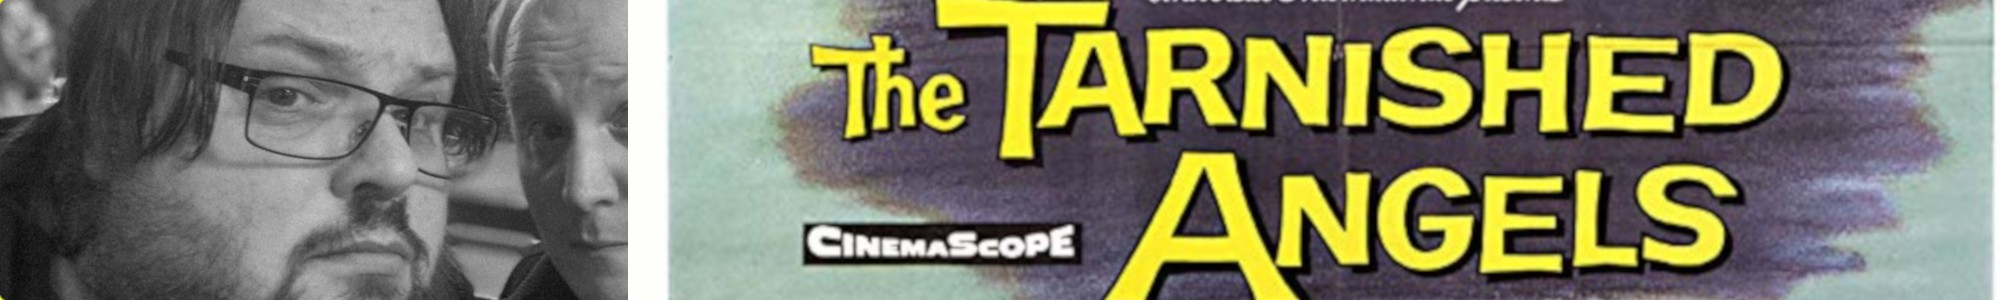 The Tarnished Angels Banner